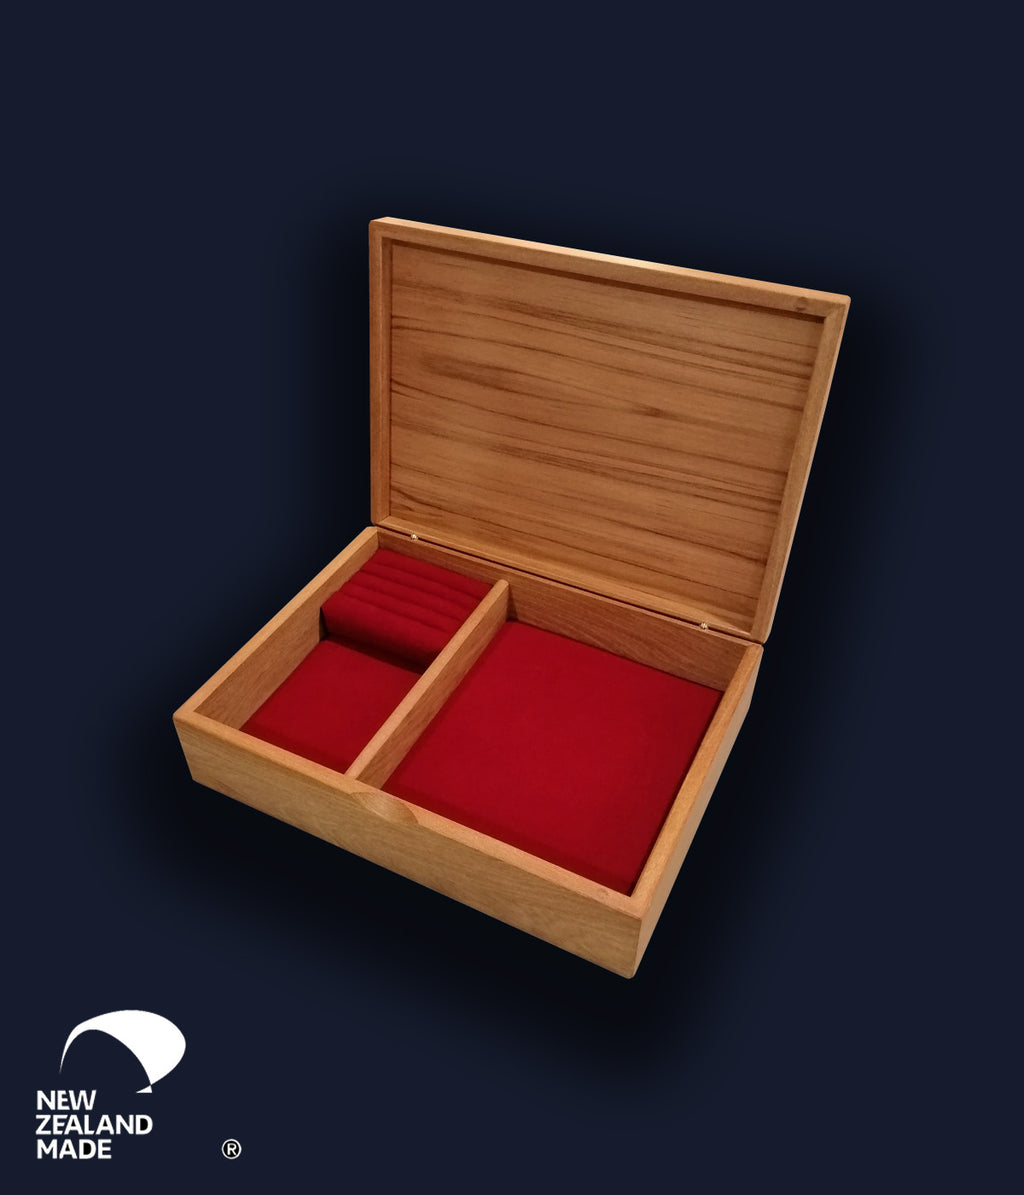 Rimu Jewellery Box Medium